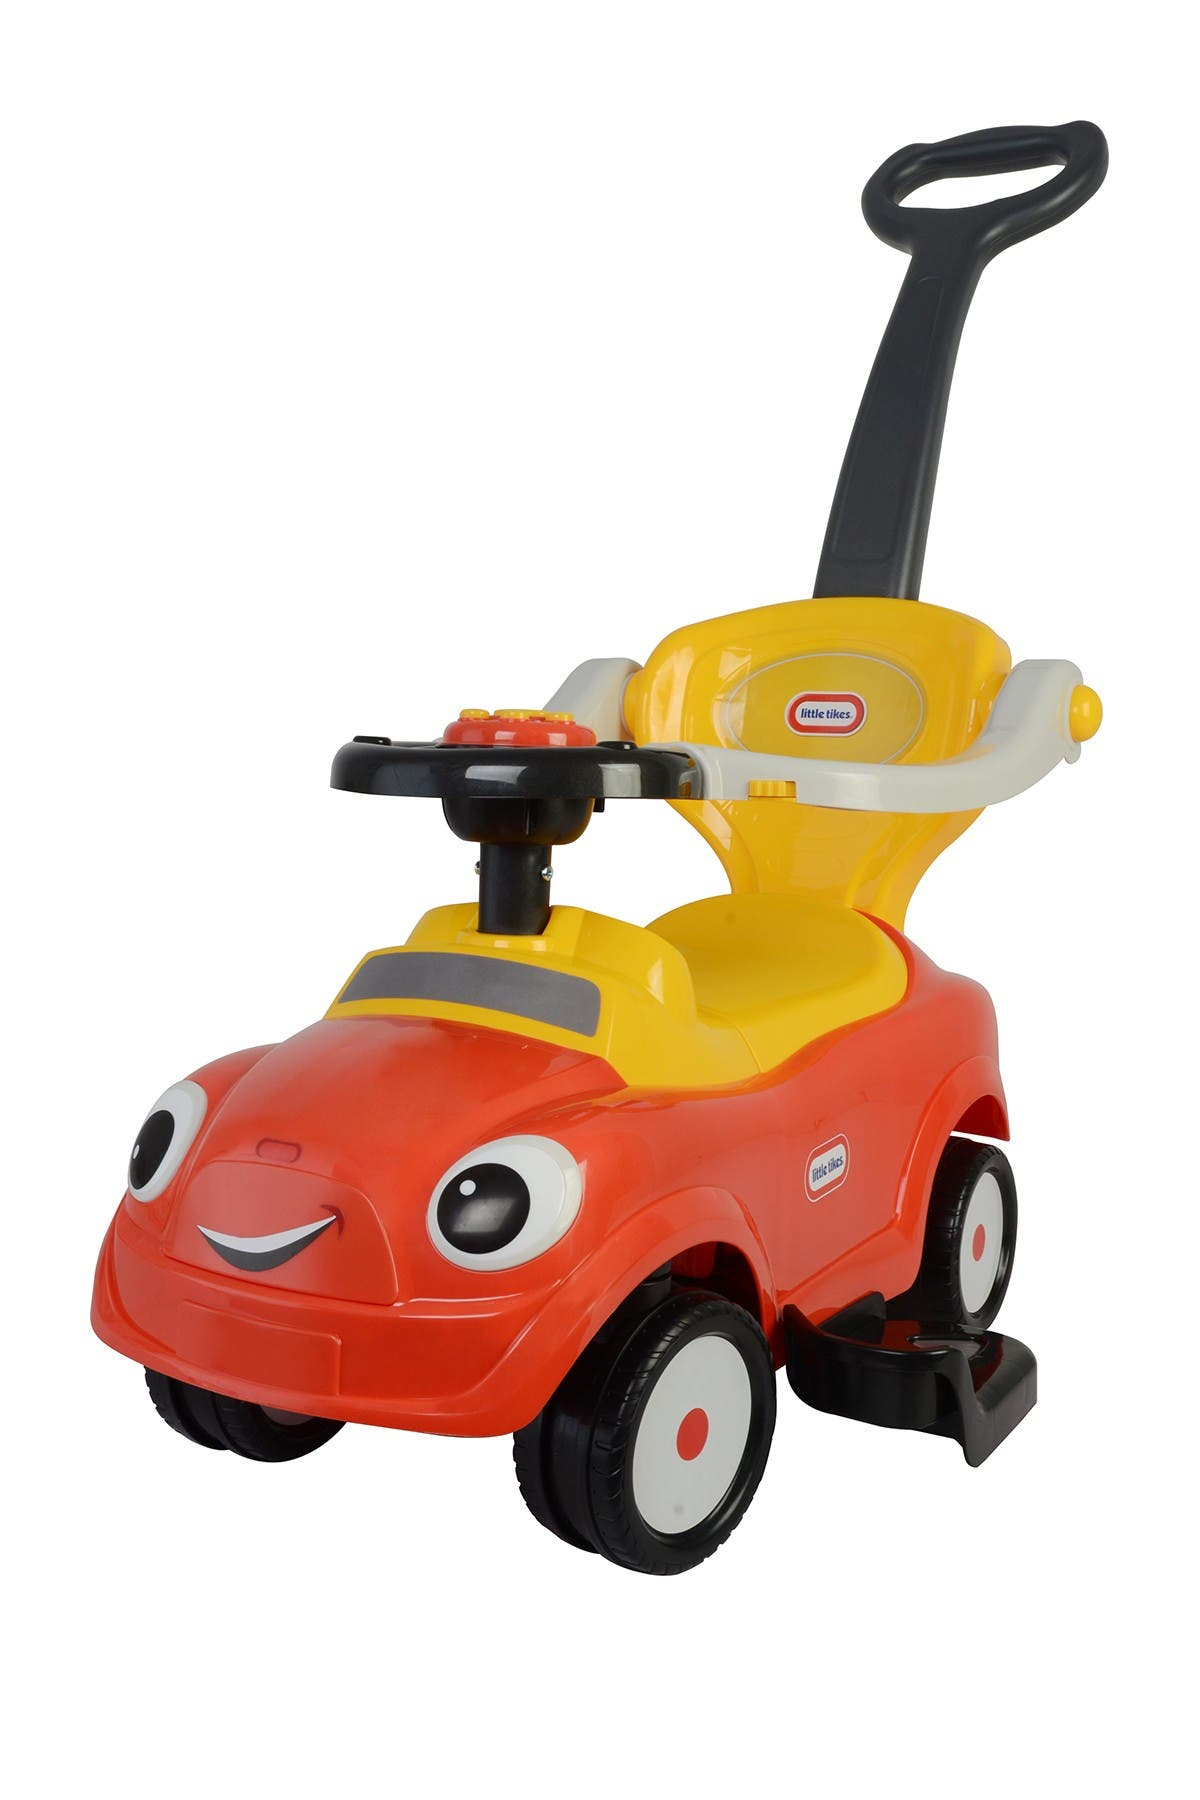 Image of BEST RIDE ON CARS 3 in 1 Little Tike - Red